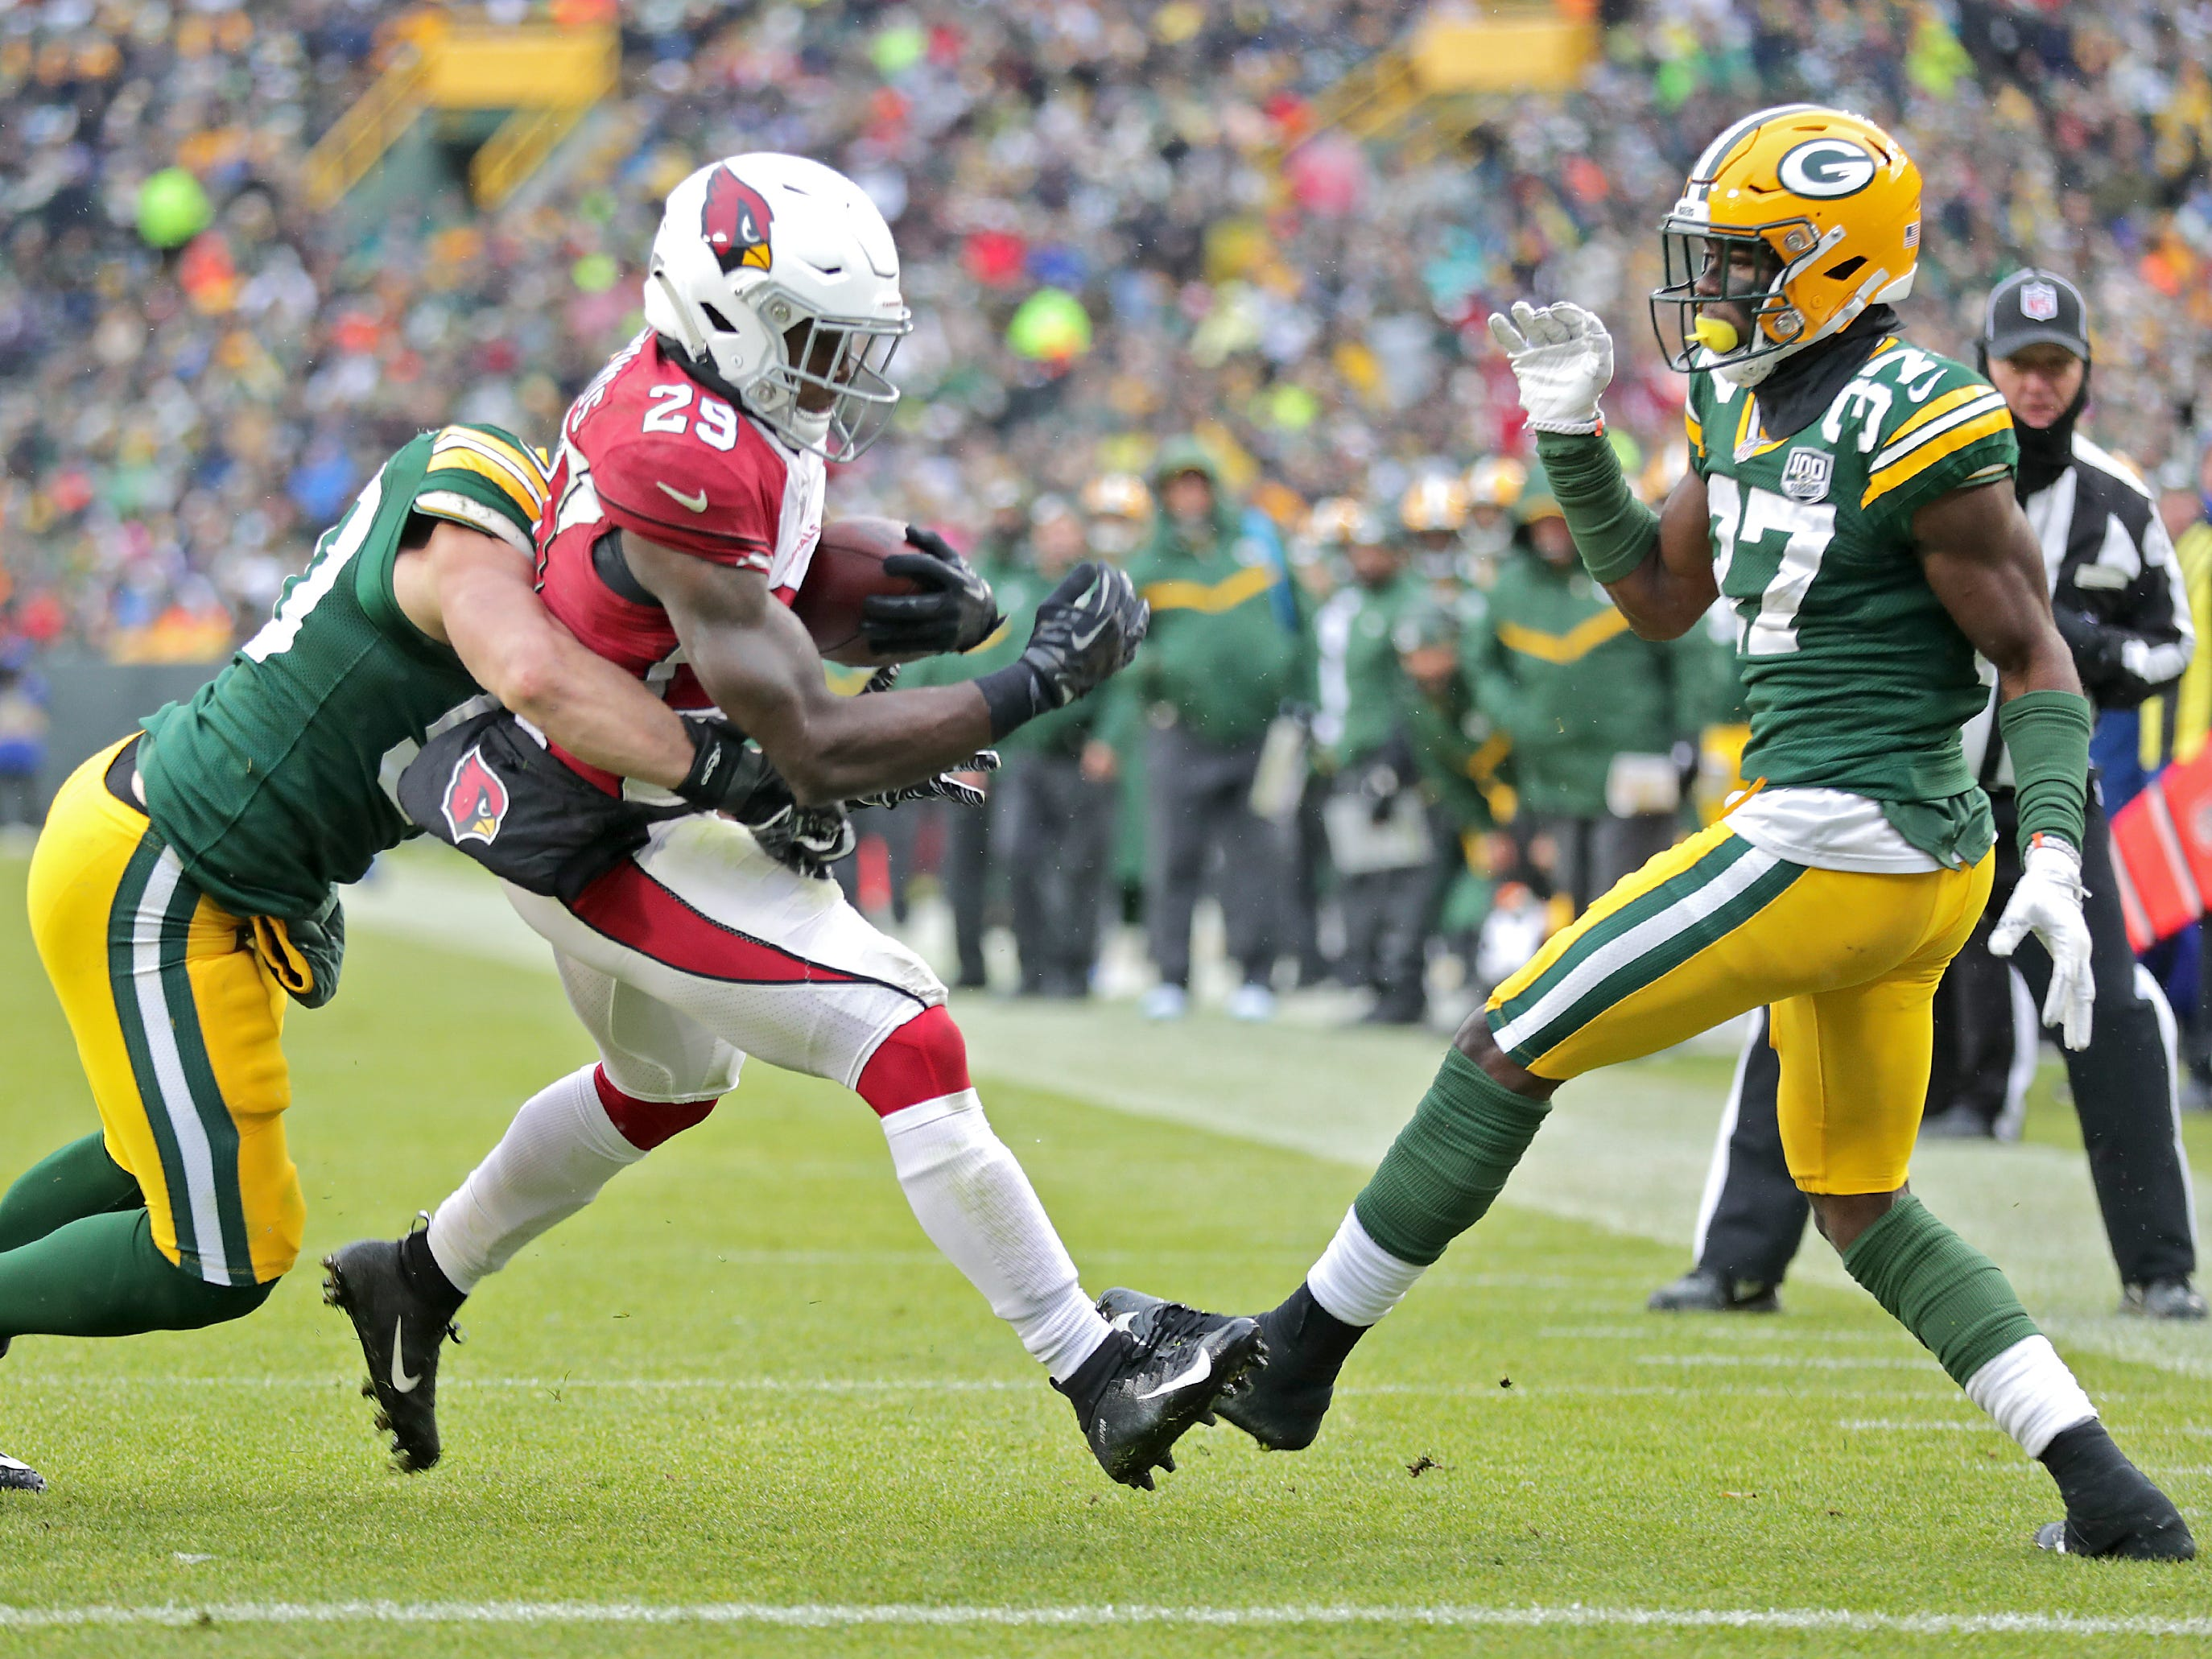 Arizona Cardinals running back Chase Edmonds crosses the goal line in the third quarter against the defense of Green Bay Packers inside linebacker Blake Martinez and cornerback Josh Jackson during their football game on Sunday, December 2, 2018, at Lambeau Field in Green Bay, Wis. Wm. Glasheen/USA TODAY NETWORK-Wisconsin.